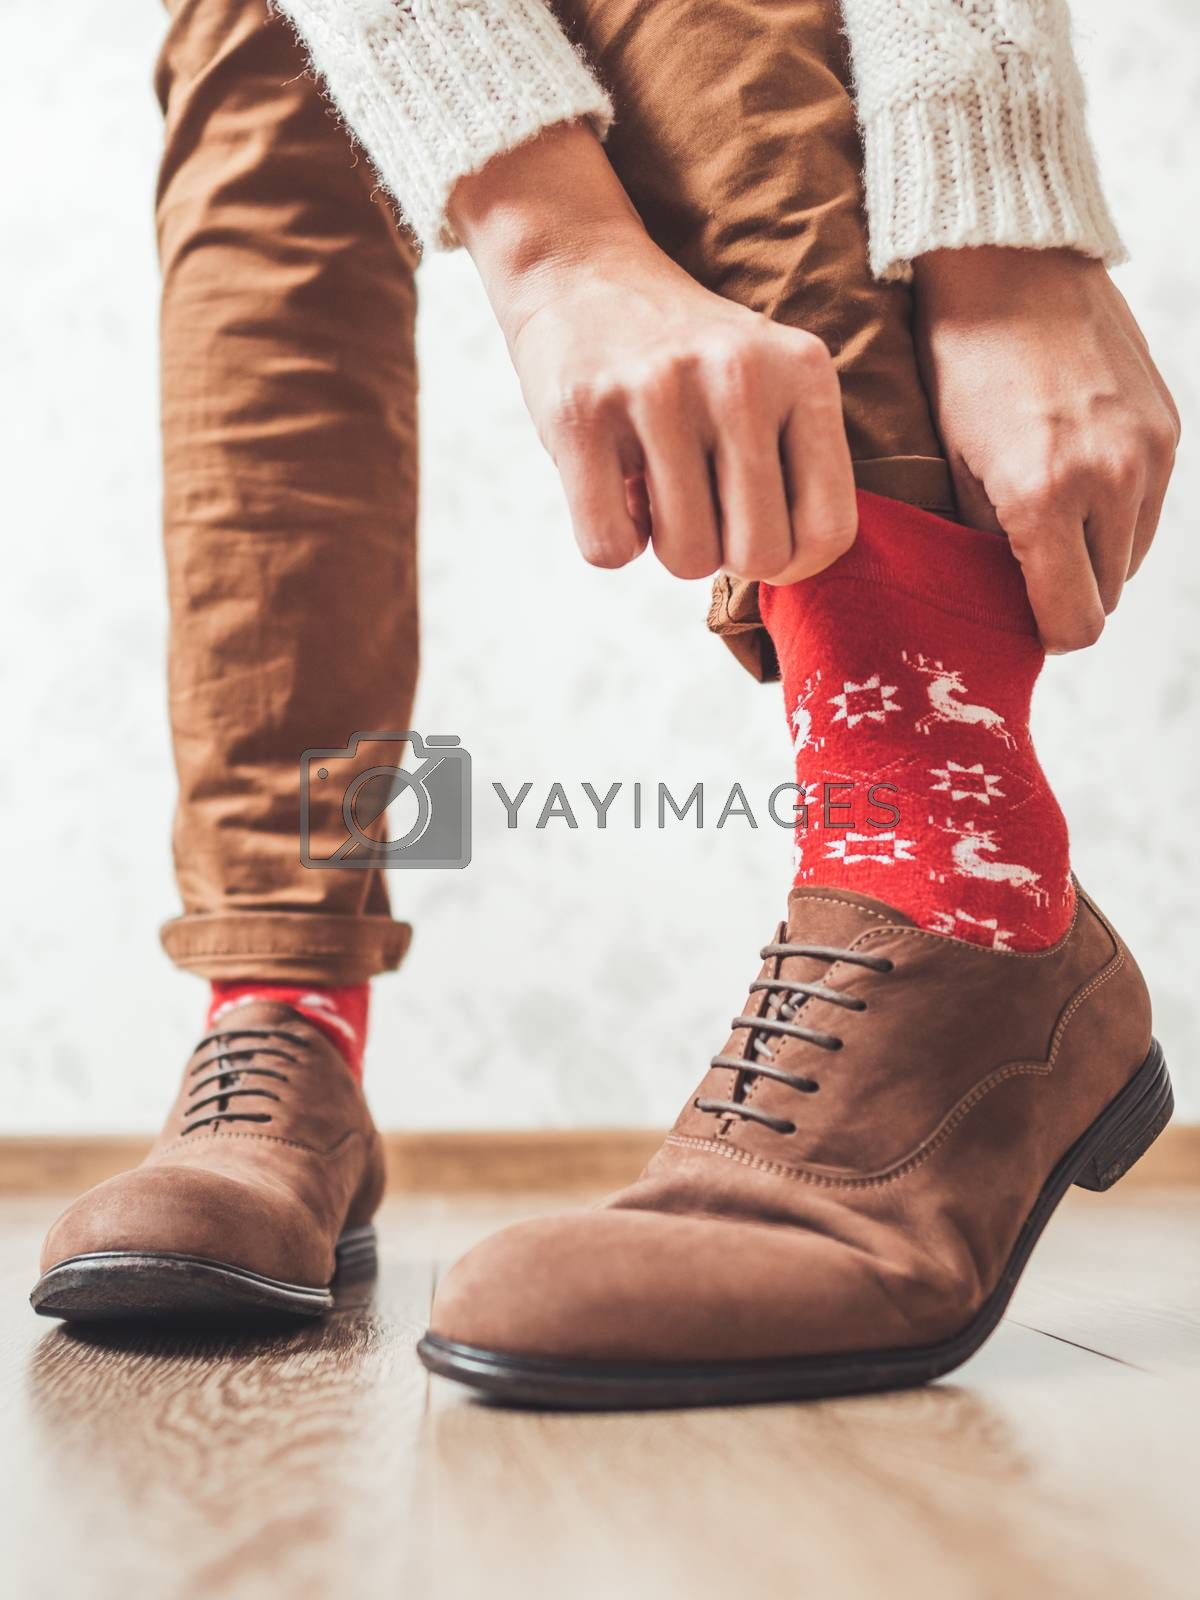 Royalty free image of Young man pulls up leg of his chinos trousers to show bright red socks with reindeers on them. Scandinavian pattern. Winter holiday spirit. Casual outfit for New Year and Christmas celebration. by aksenovko